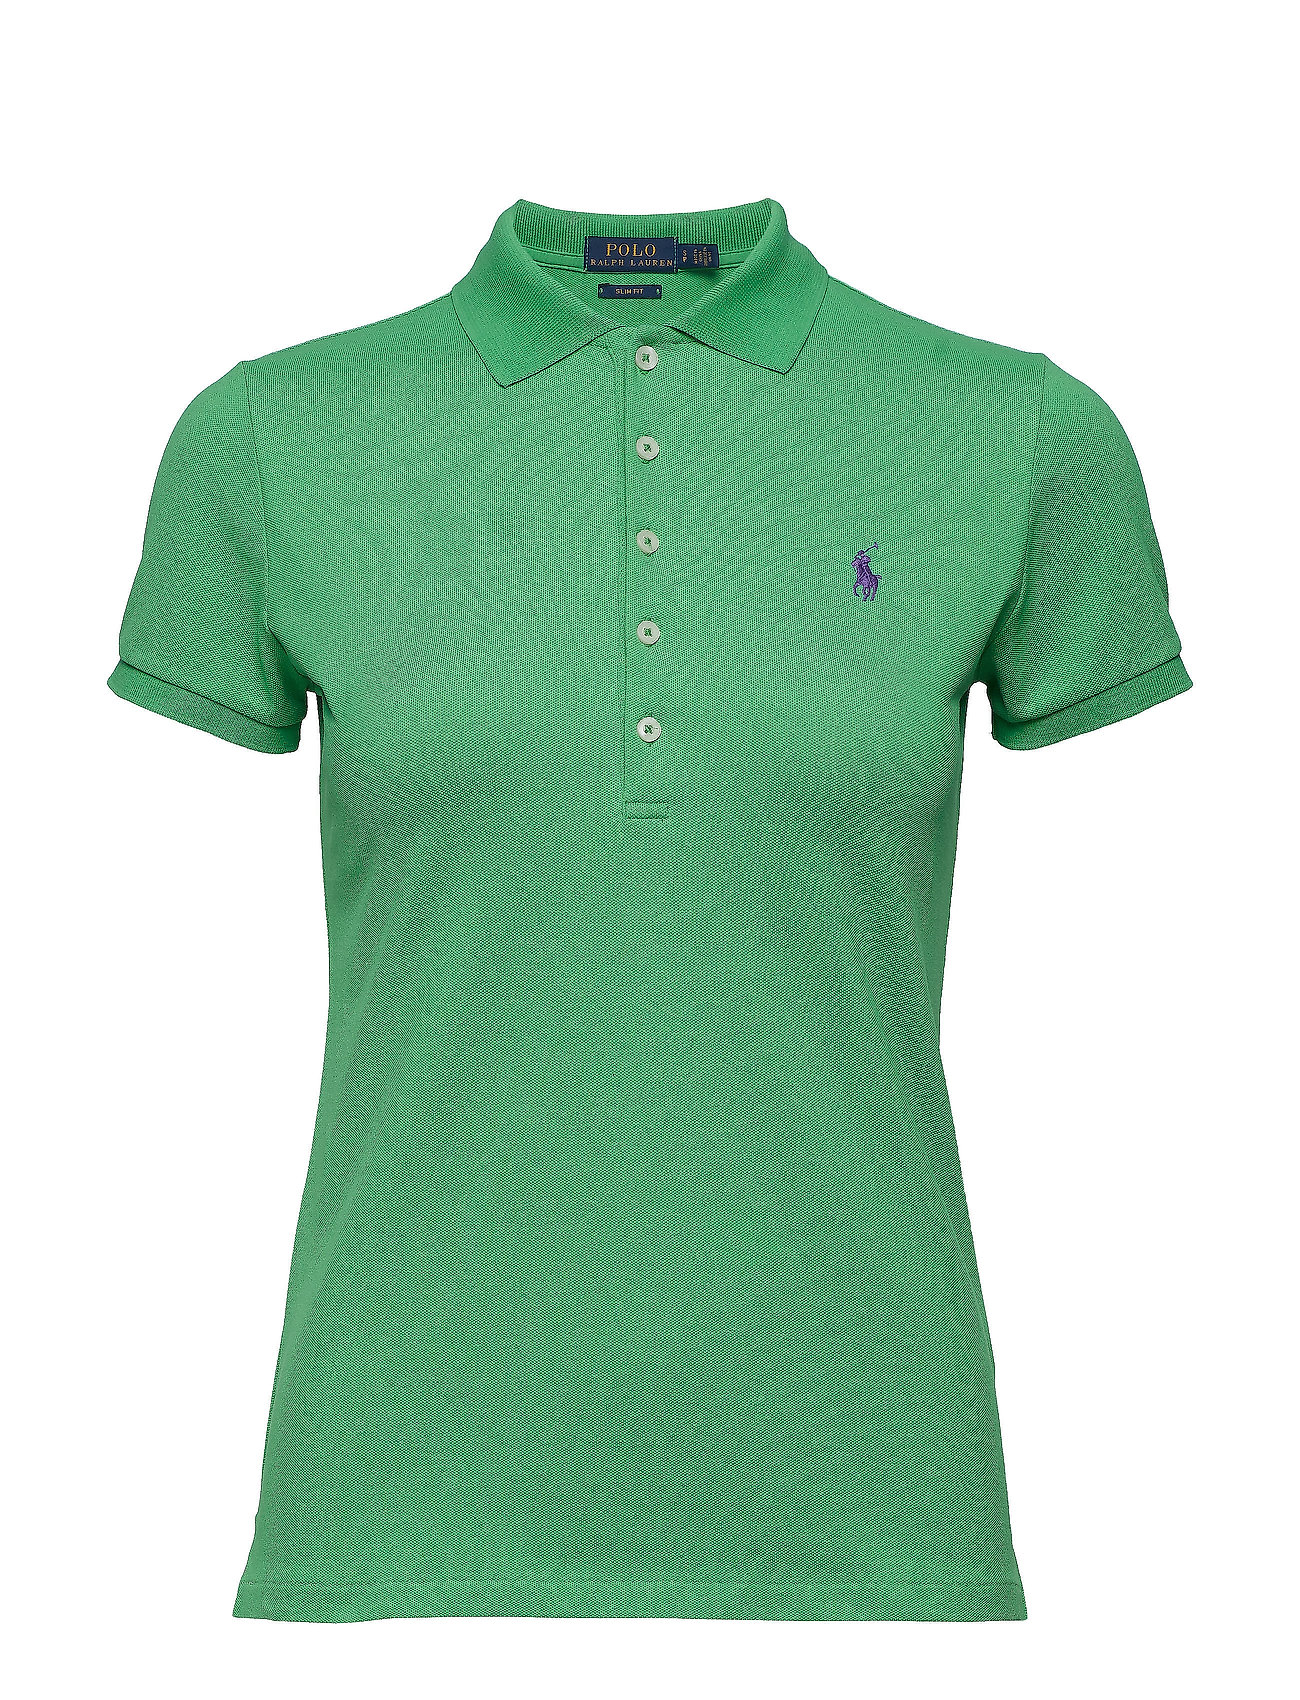 Polo Ralph Lauren Skinny Fit Stretch Mesh Polo - VINEYARD GREEN